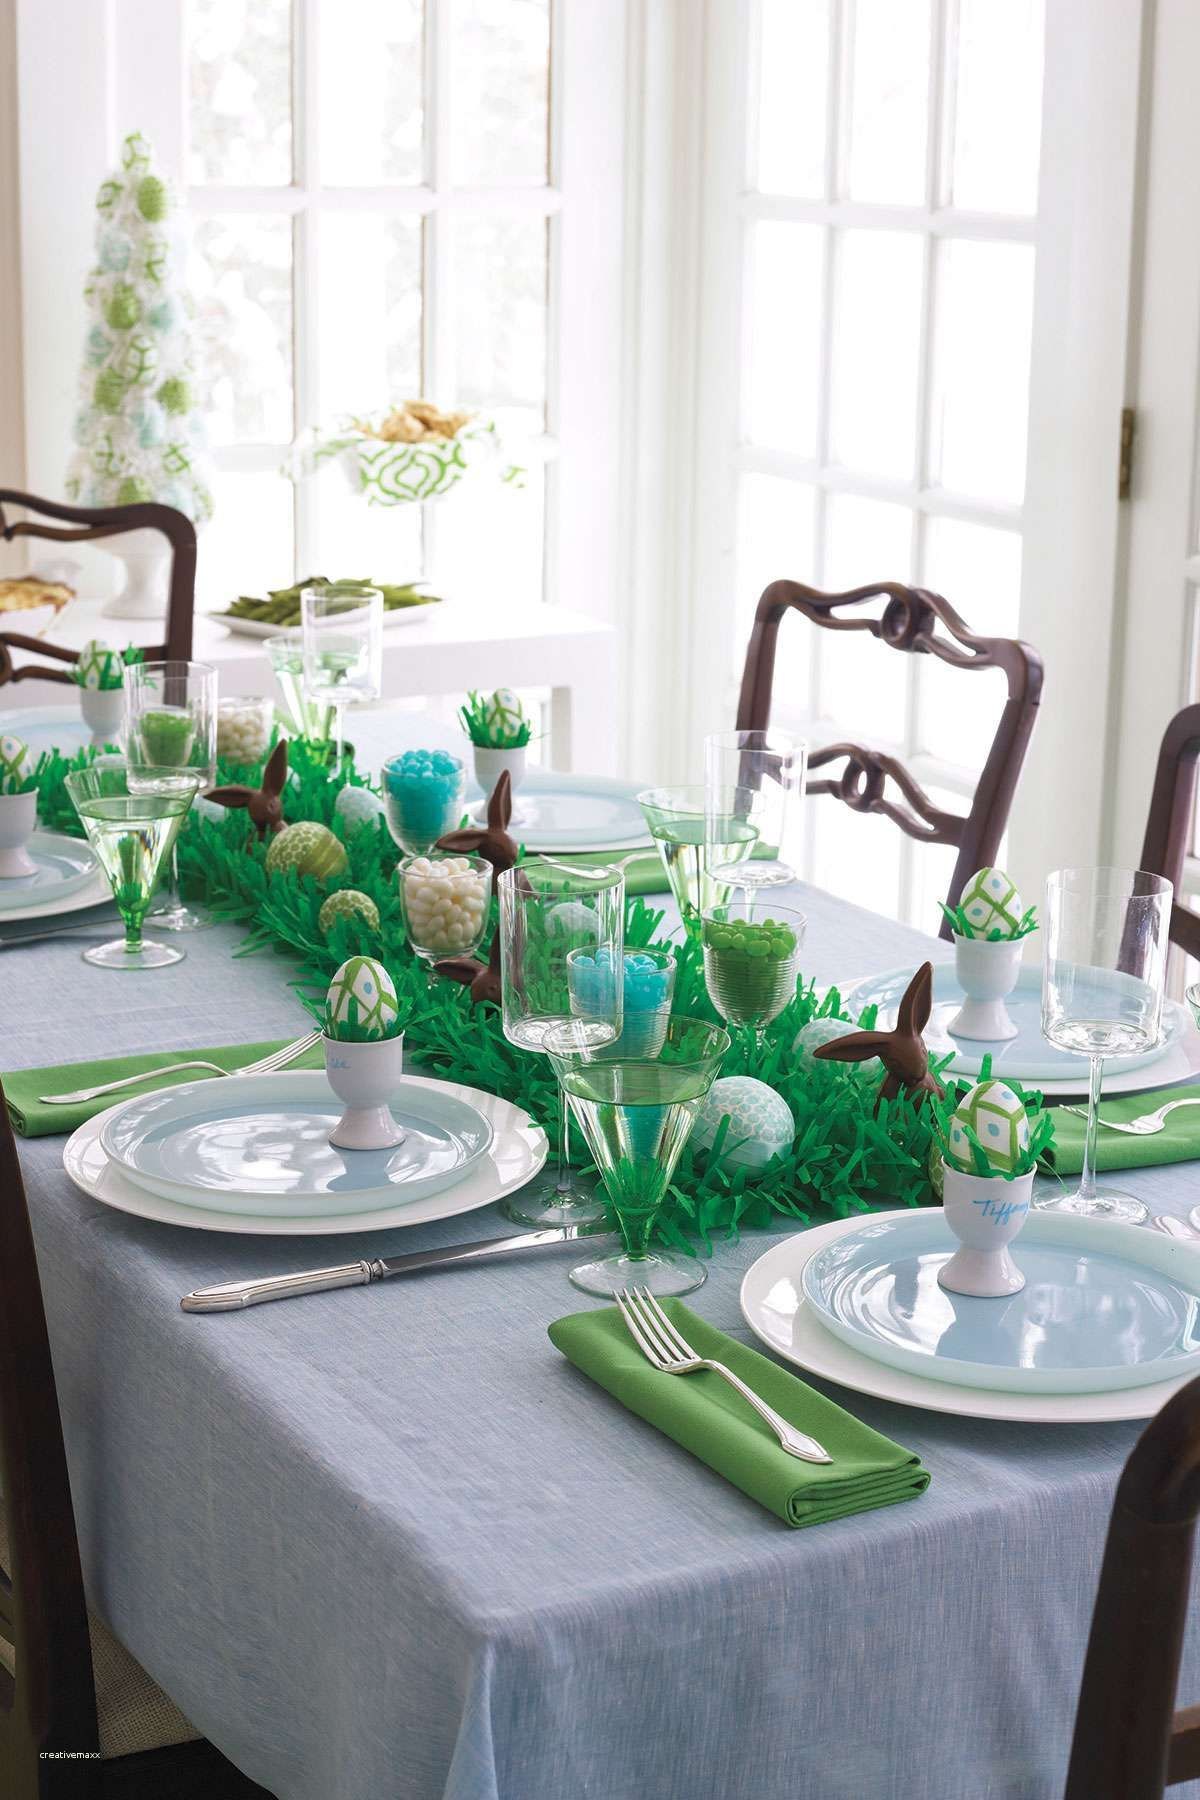 Best Of Outdoor Easter Table Decorations   Easter party, Easter ...